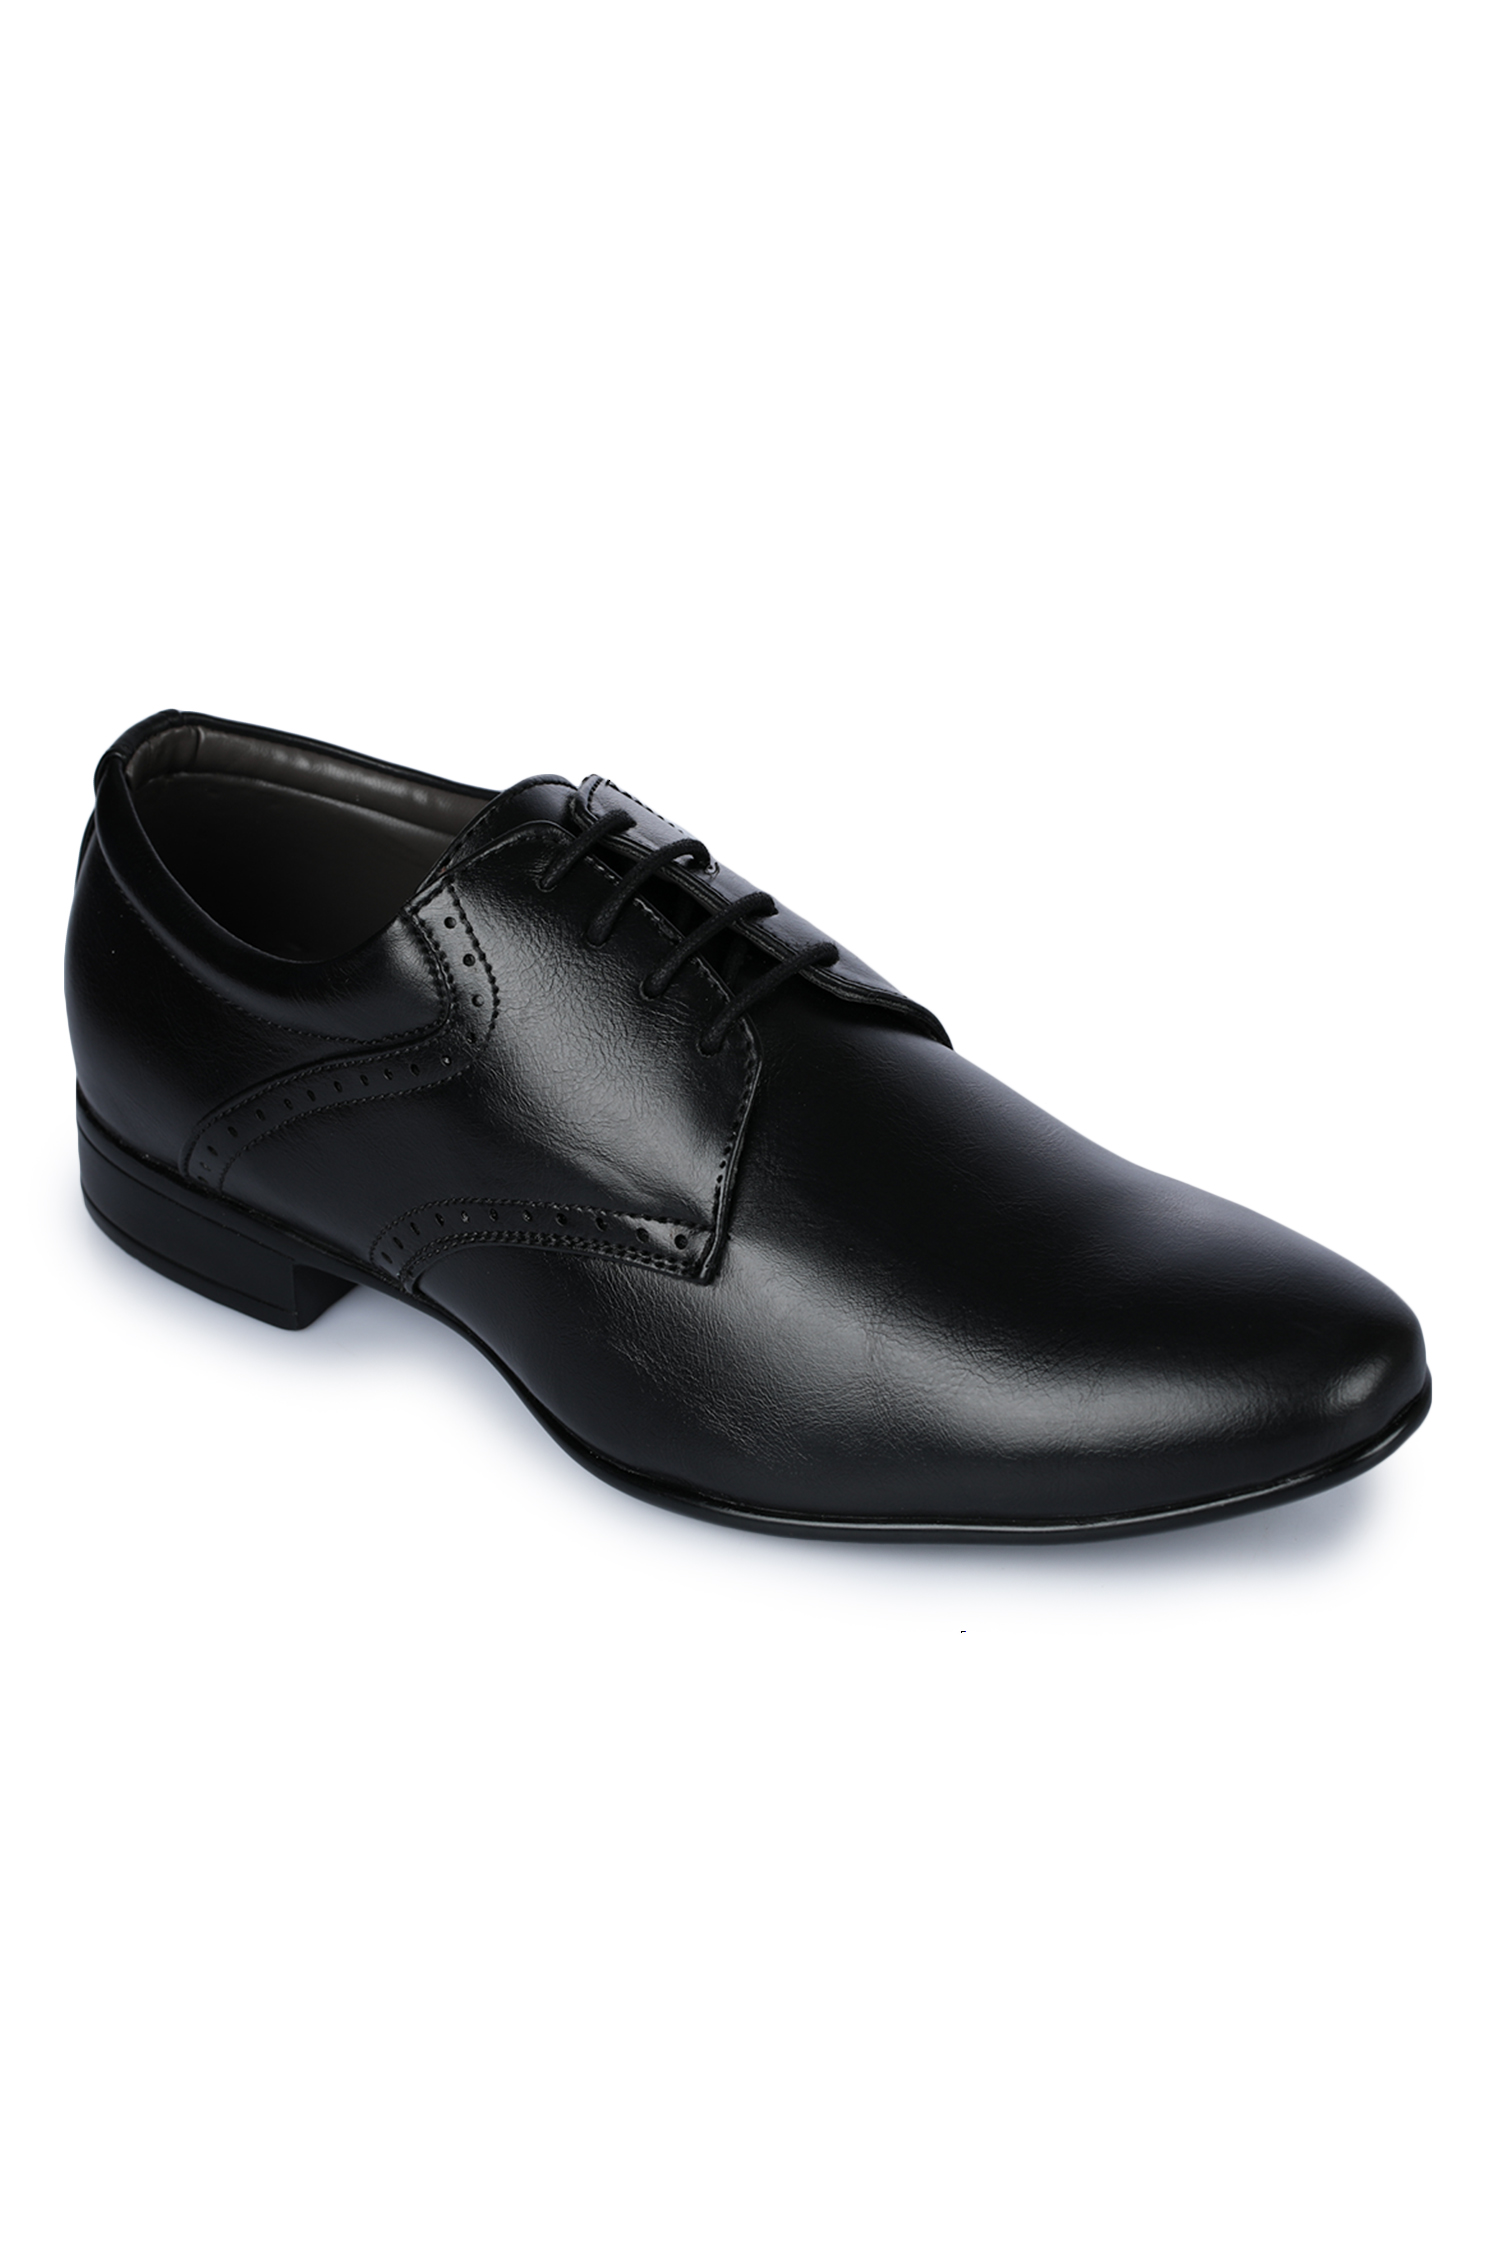 Liberty | Liberty Fortune Black Formal Derby Shoes A13-03_Black For - Men